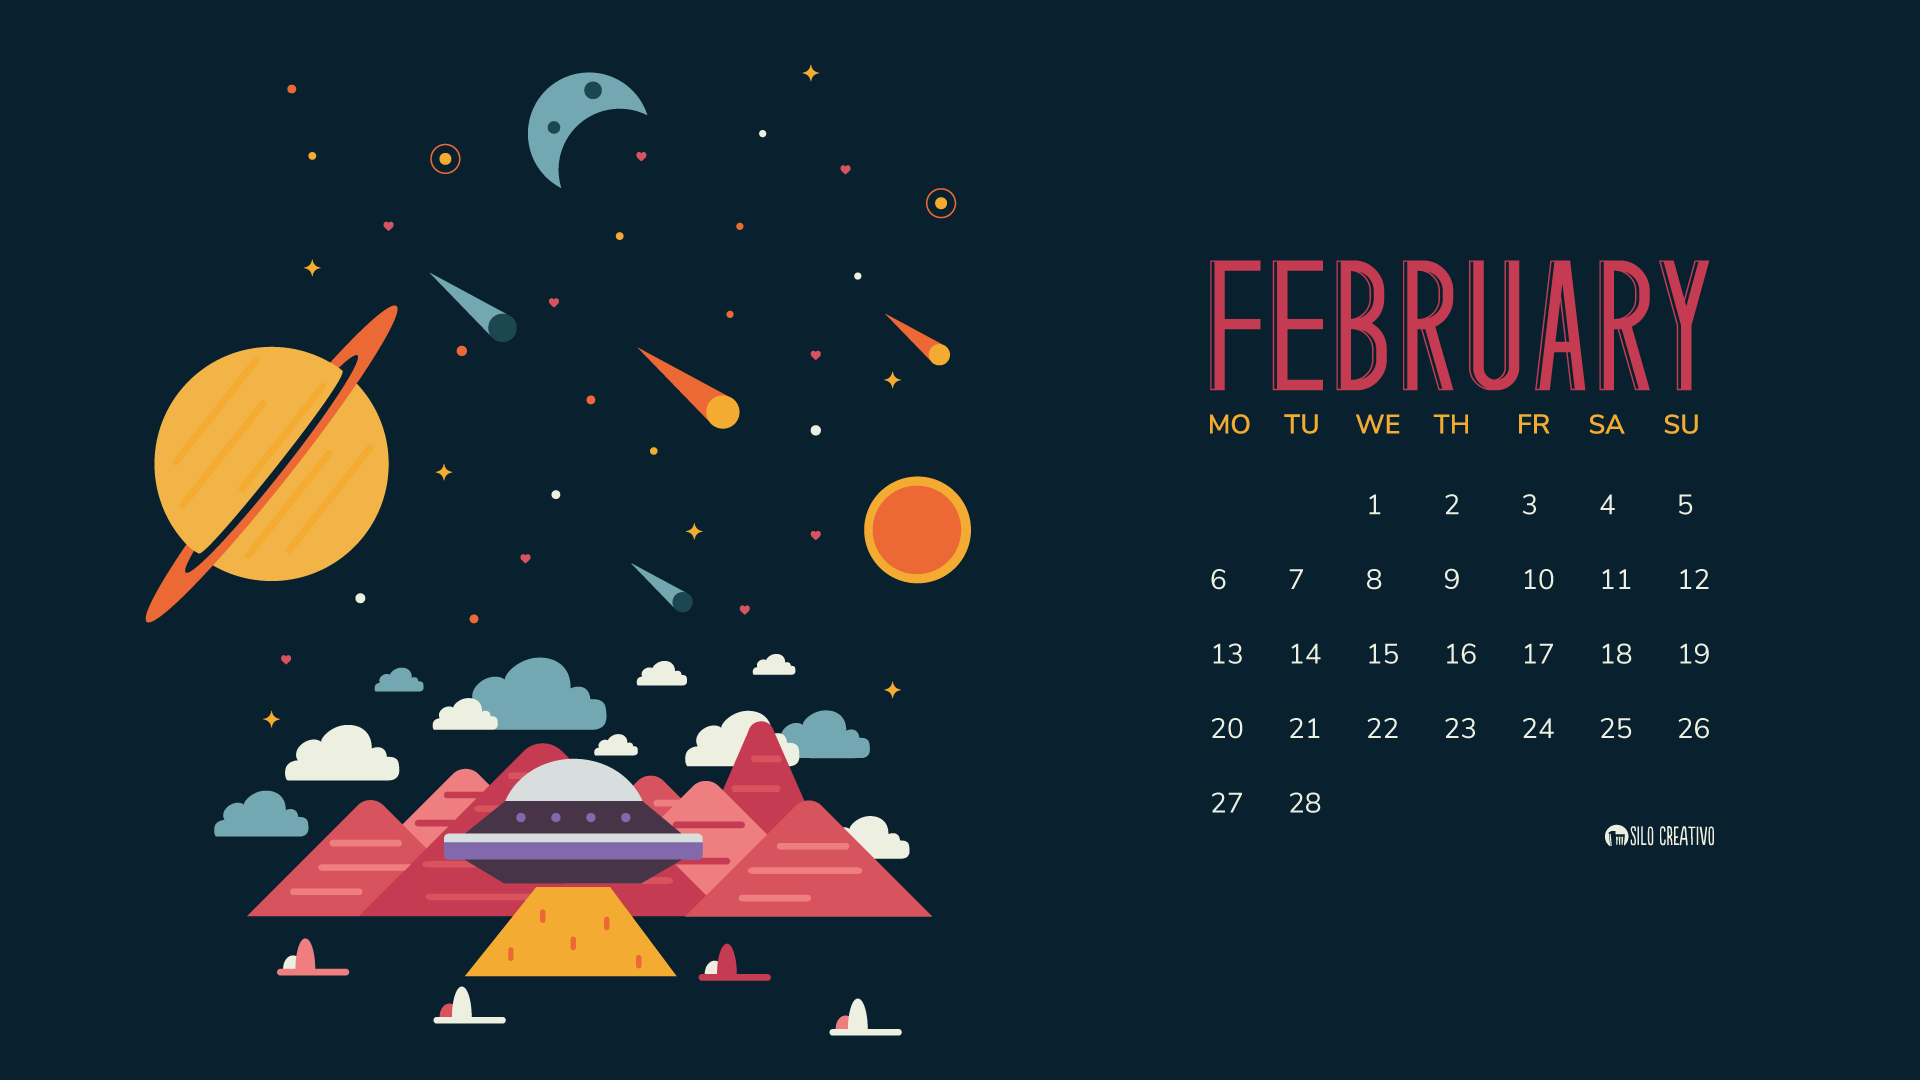 Calendar Wallpaper Windows : February wallpaper free wallpapers hd